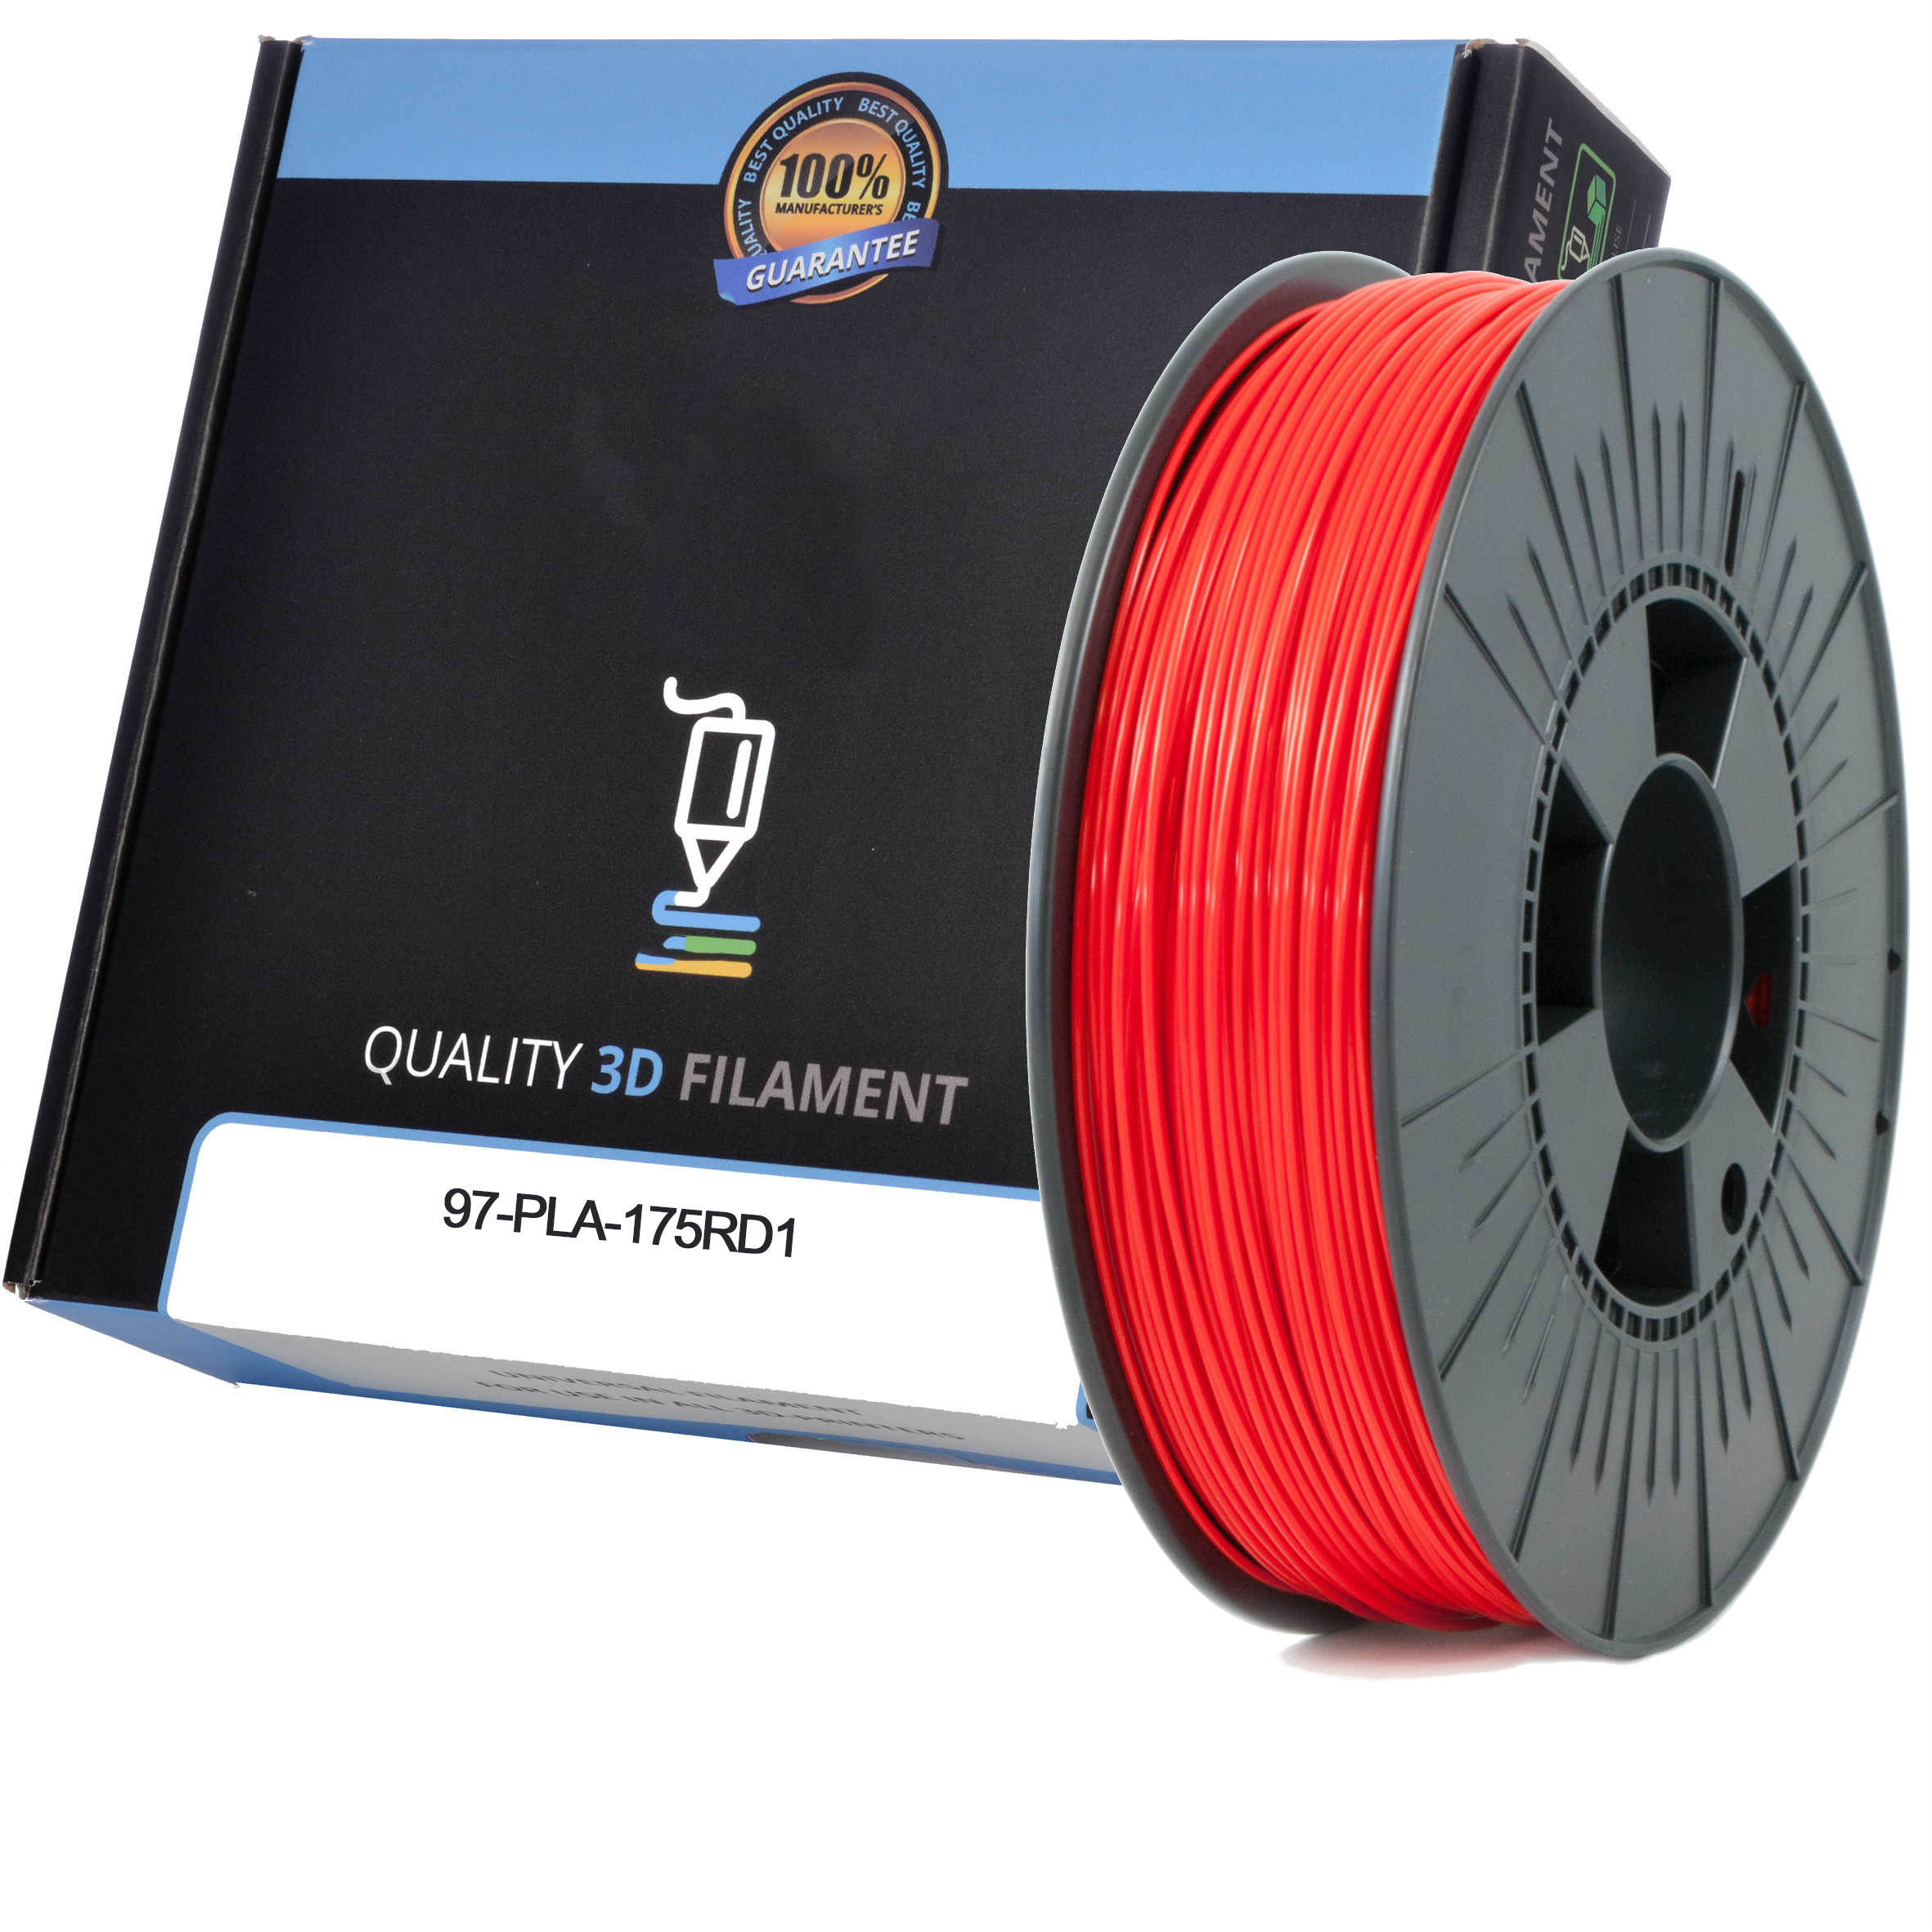 Premium Compatible PLA 1.75mm Red 1kg 3D Filament (97-PLA-175RD1)